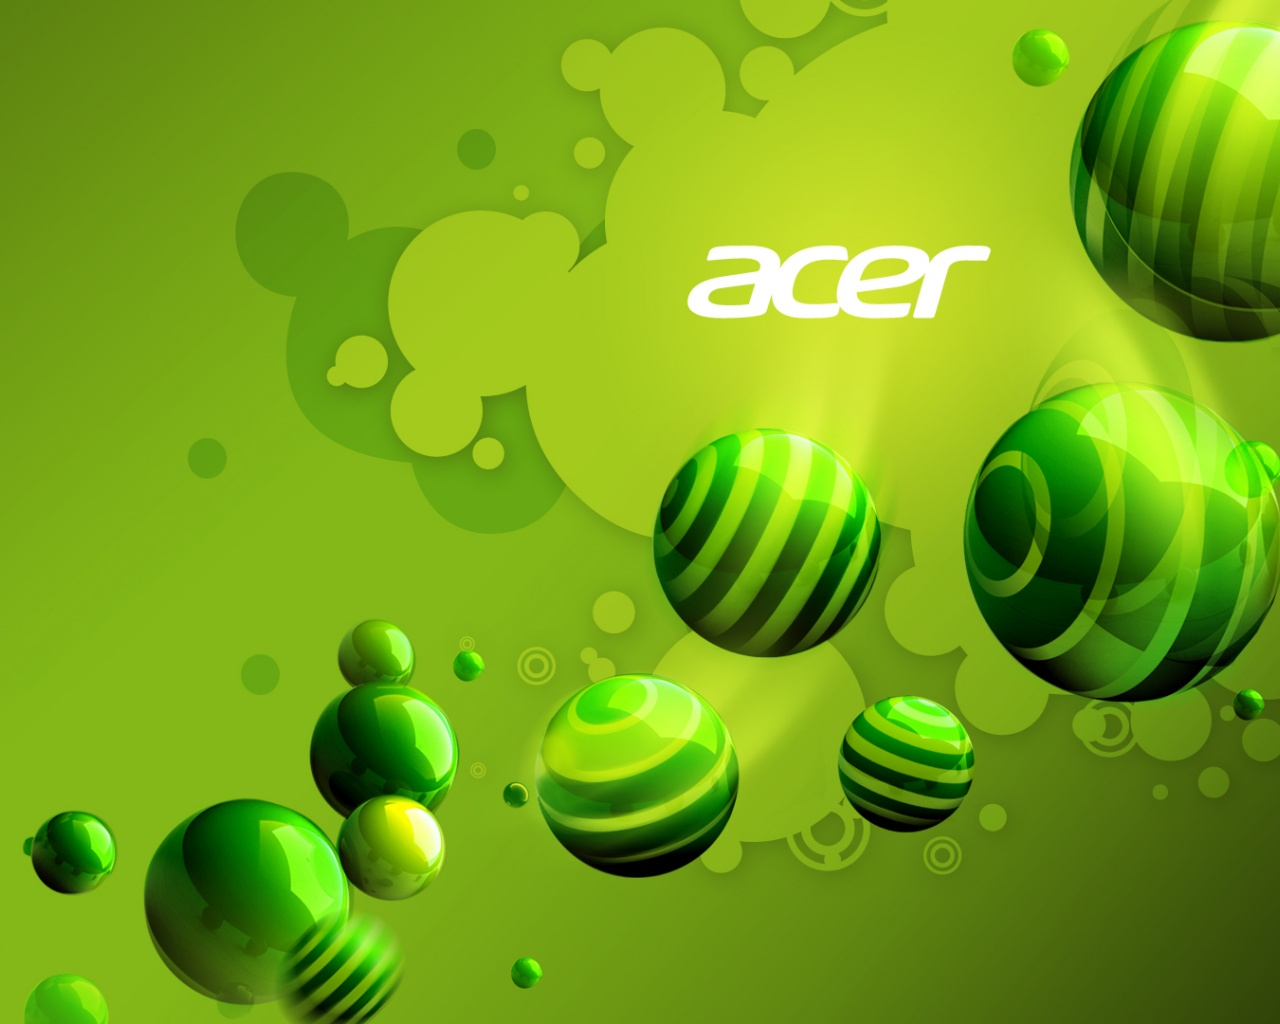 click to free download the wallpaper--Free Brandy Posts, Acer Aspire Series on Green Background, Green Balls Flowing Around 1280X1024 free wallpaper download